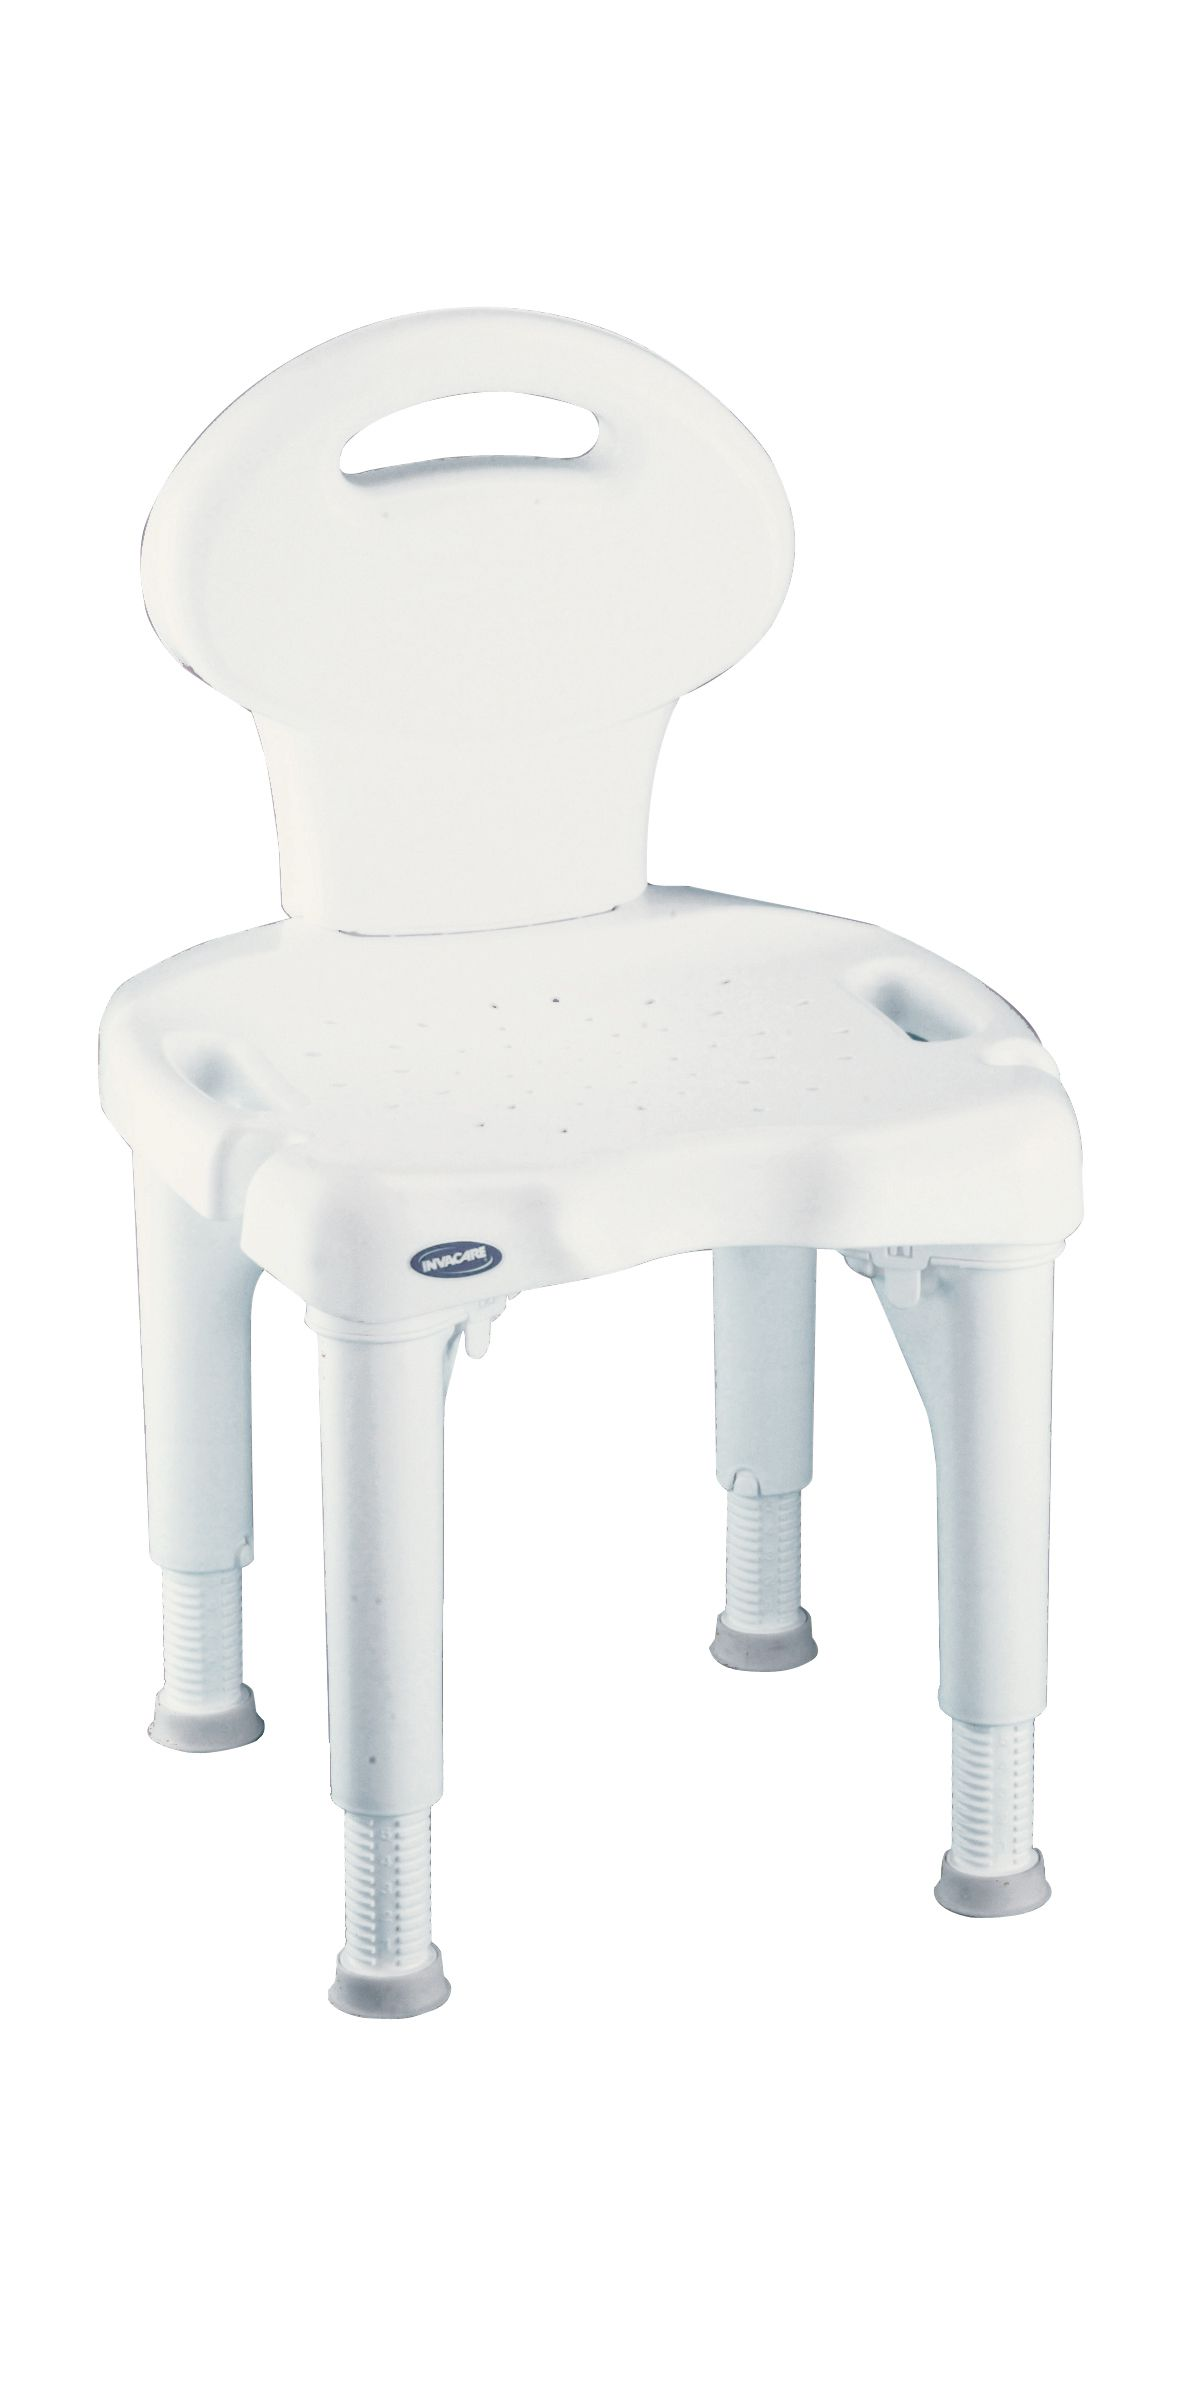 invacare shower chair decorating for baby i fit with back bath seats sale salenewfree shipping